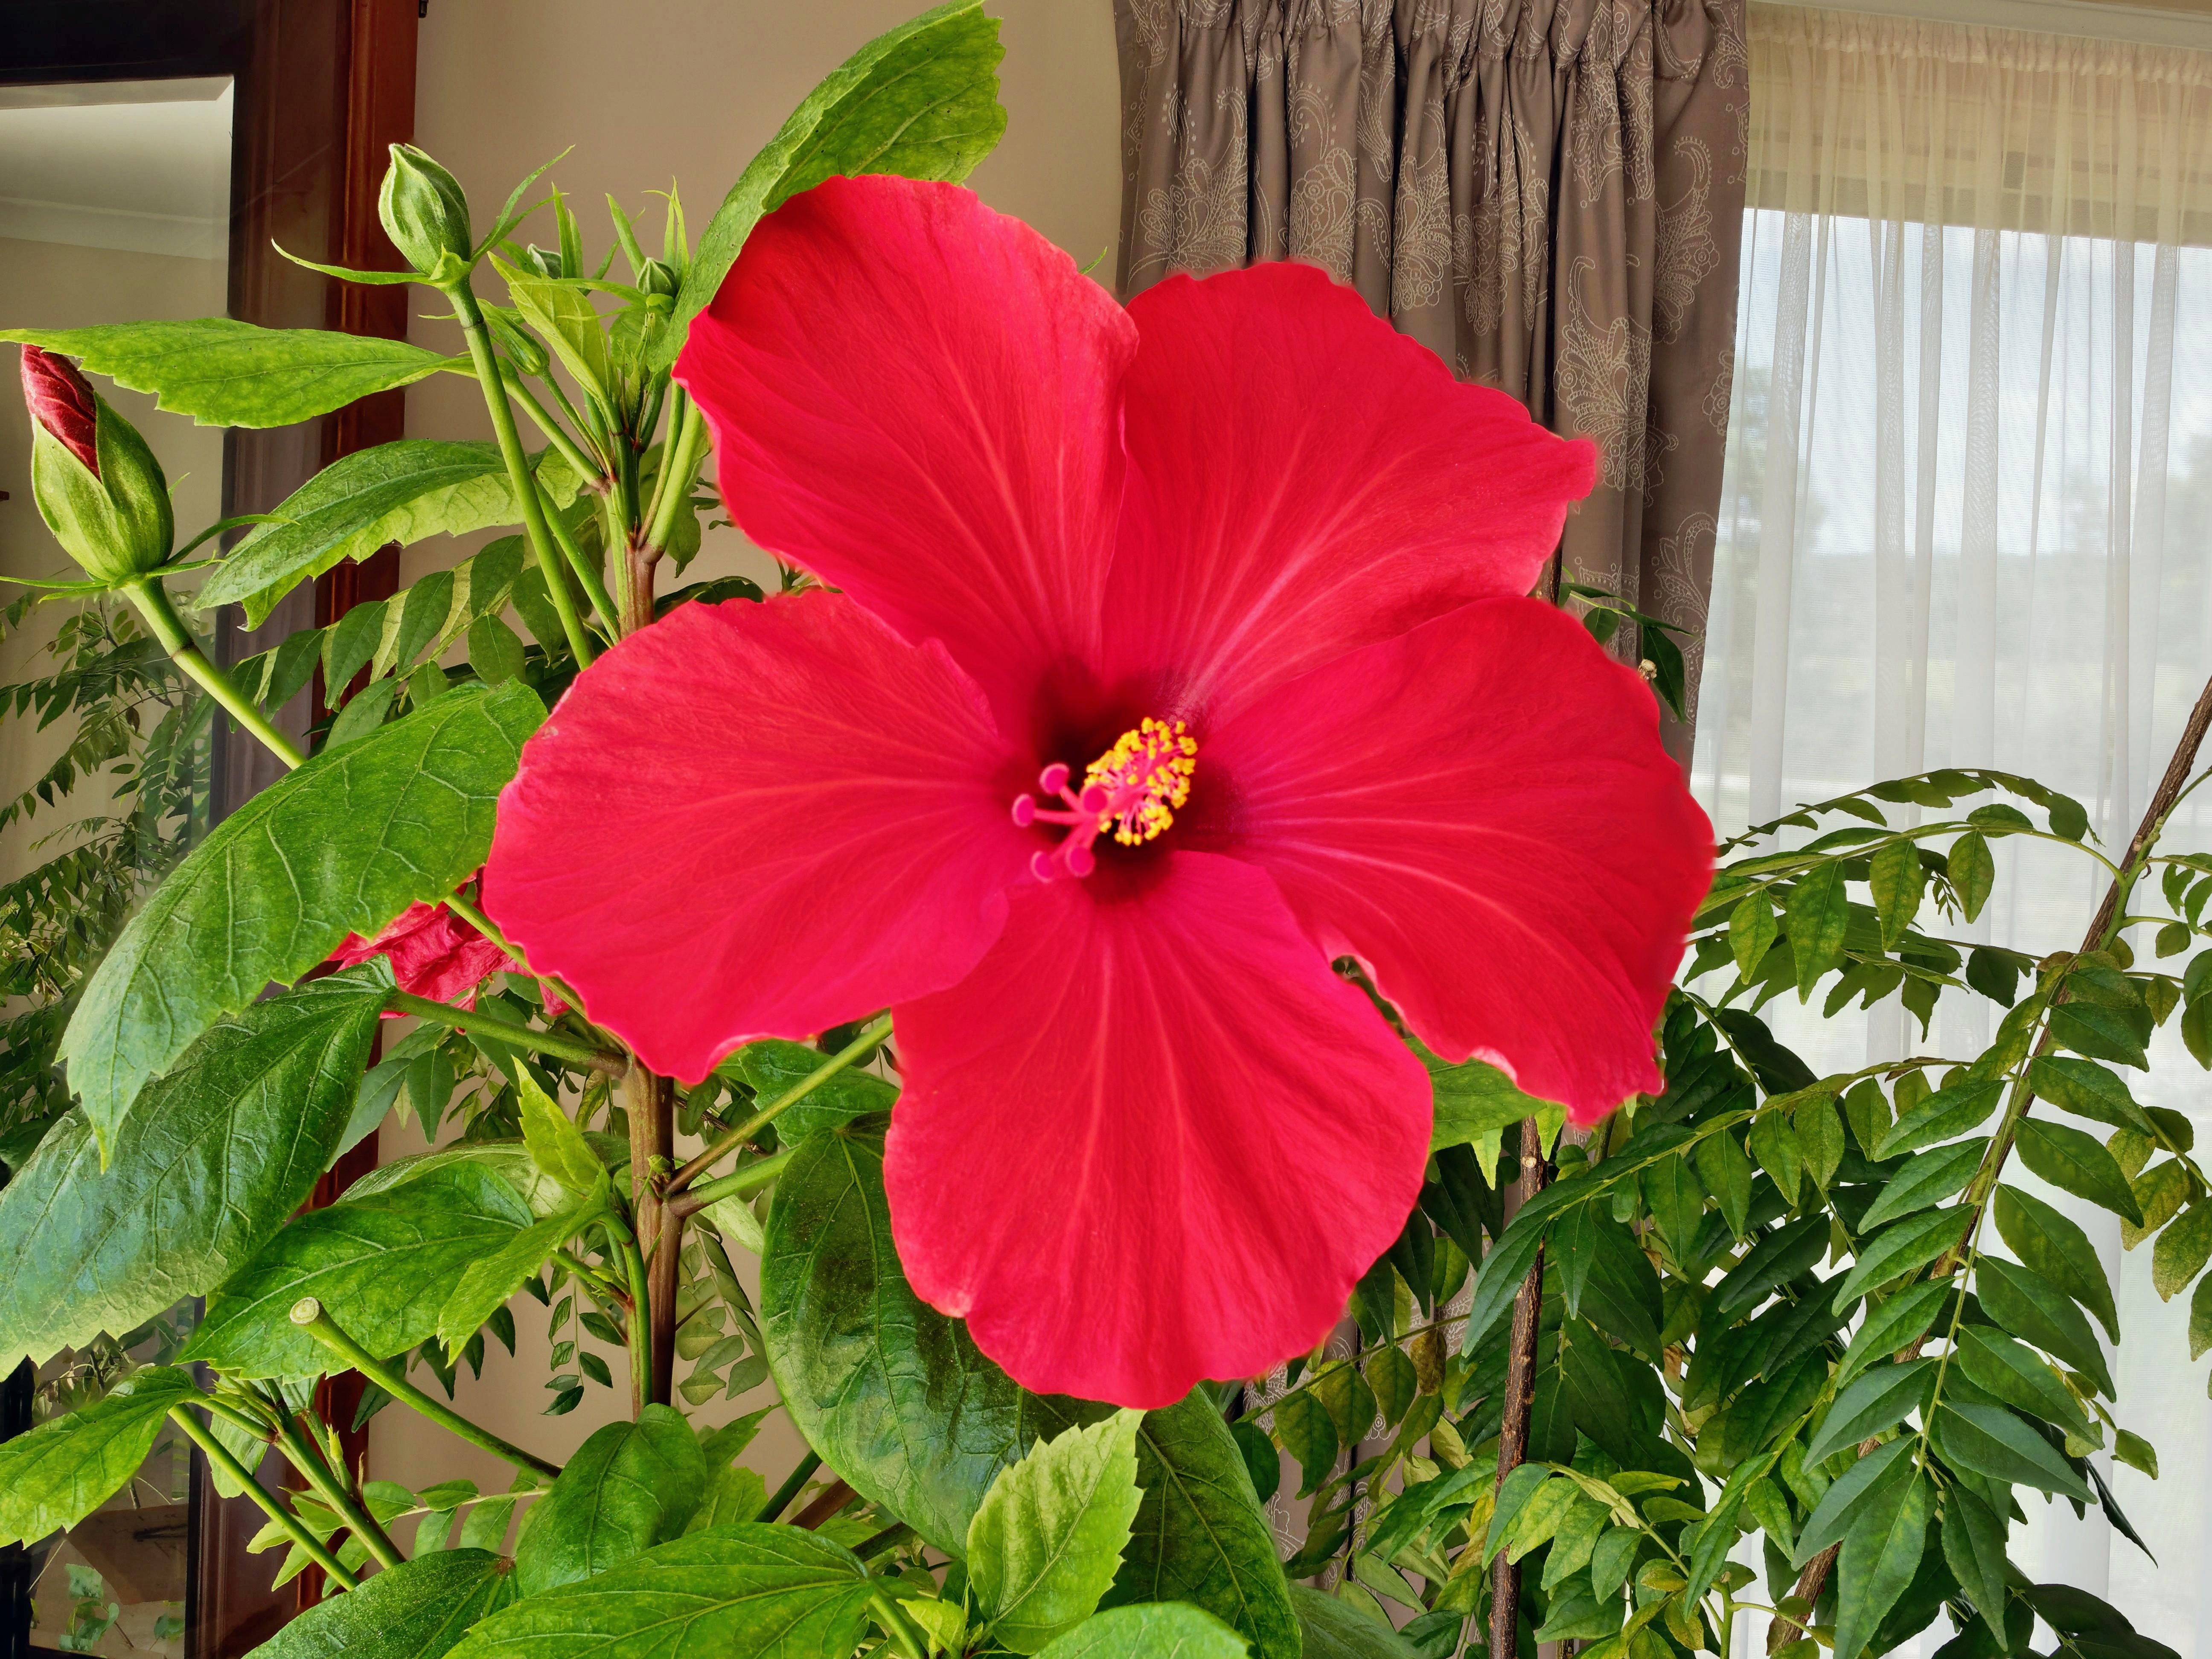 This should be Hibiscus-1.jpeg.  Is it missing?